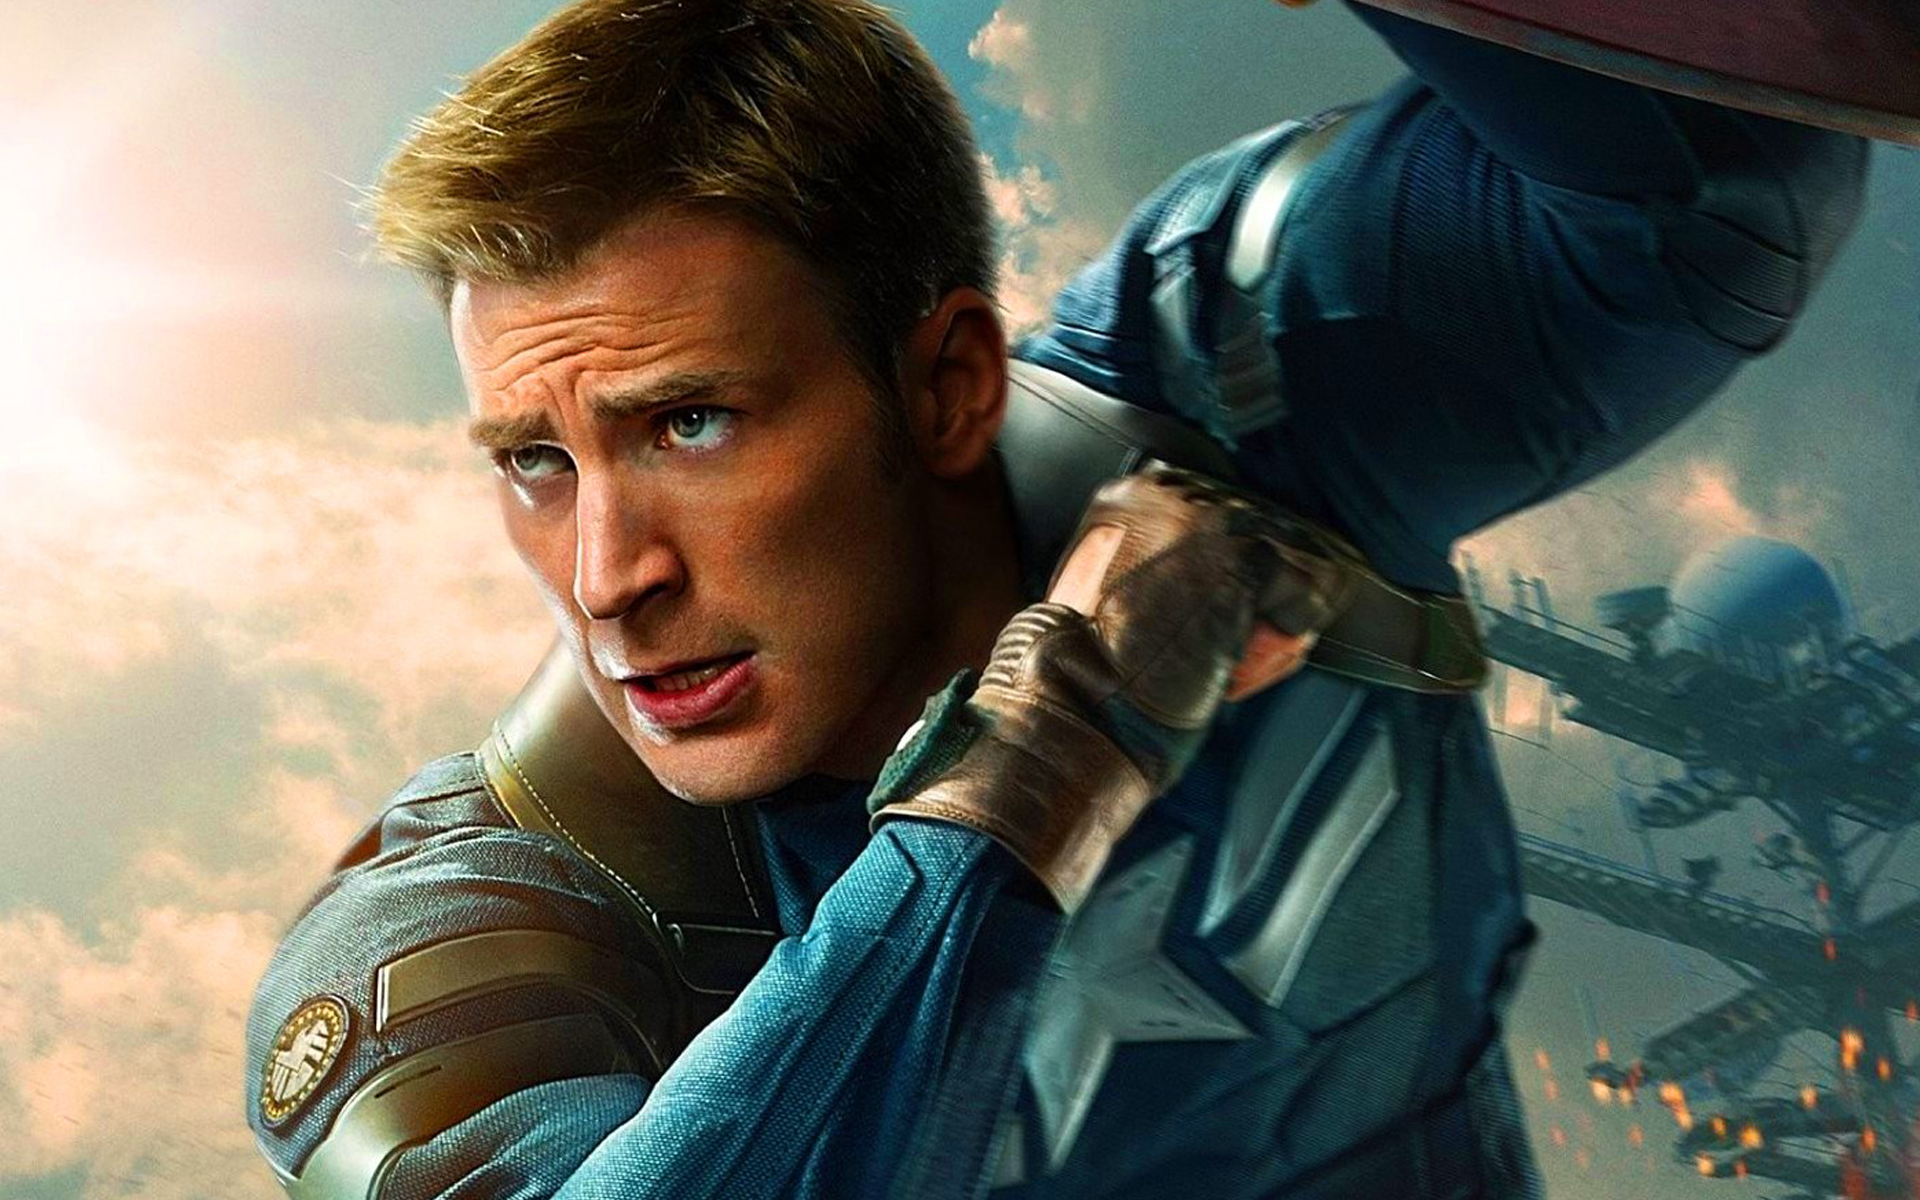 chris evans captain america 2 6x wallpaper hd. Black Bedroom Furniture Sets. Home Design Ideas